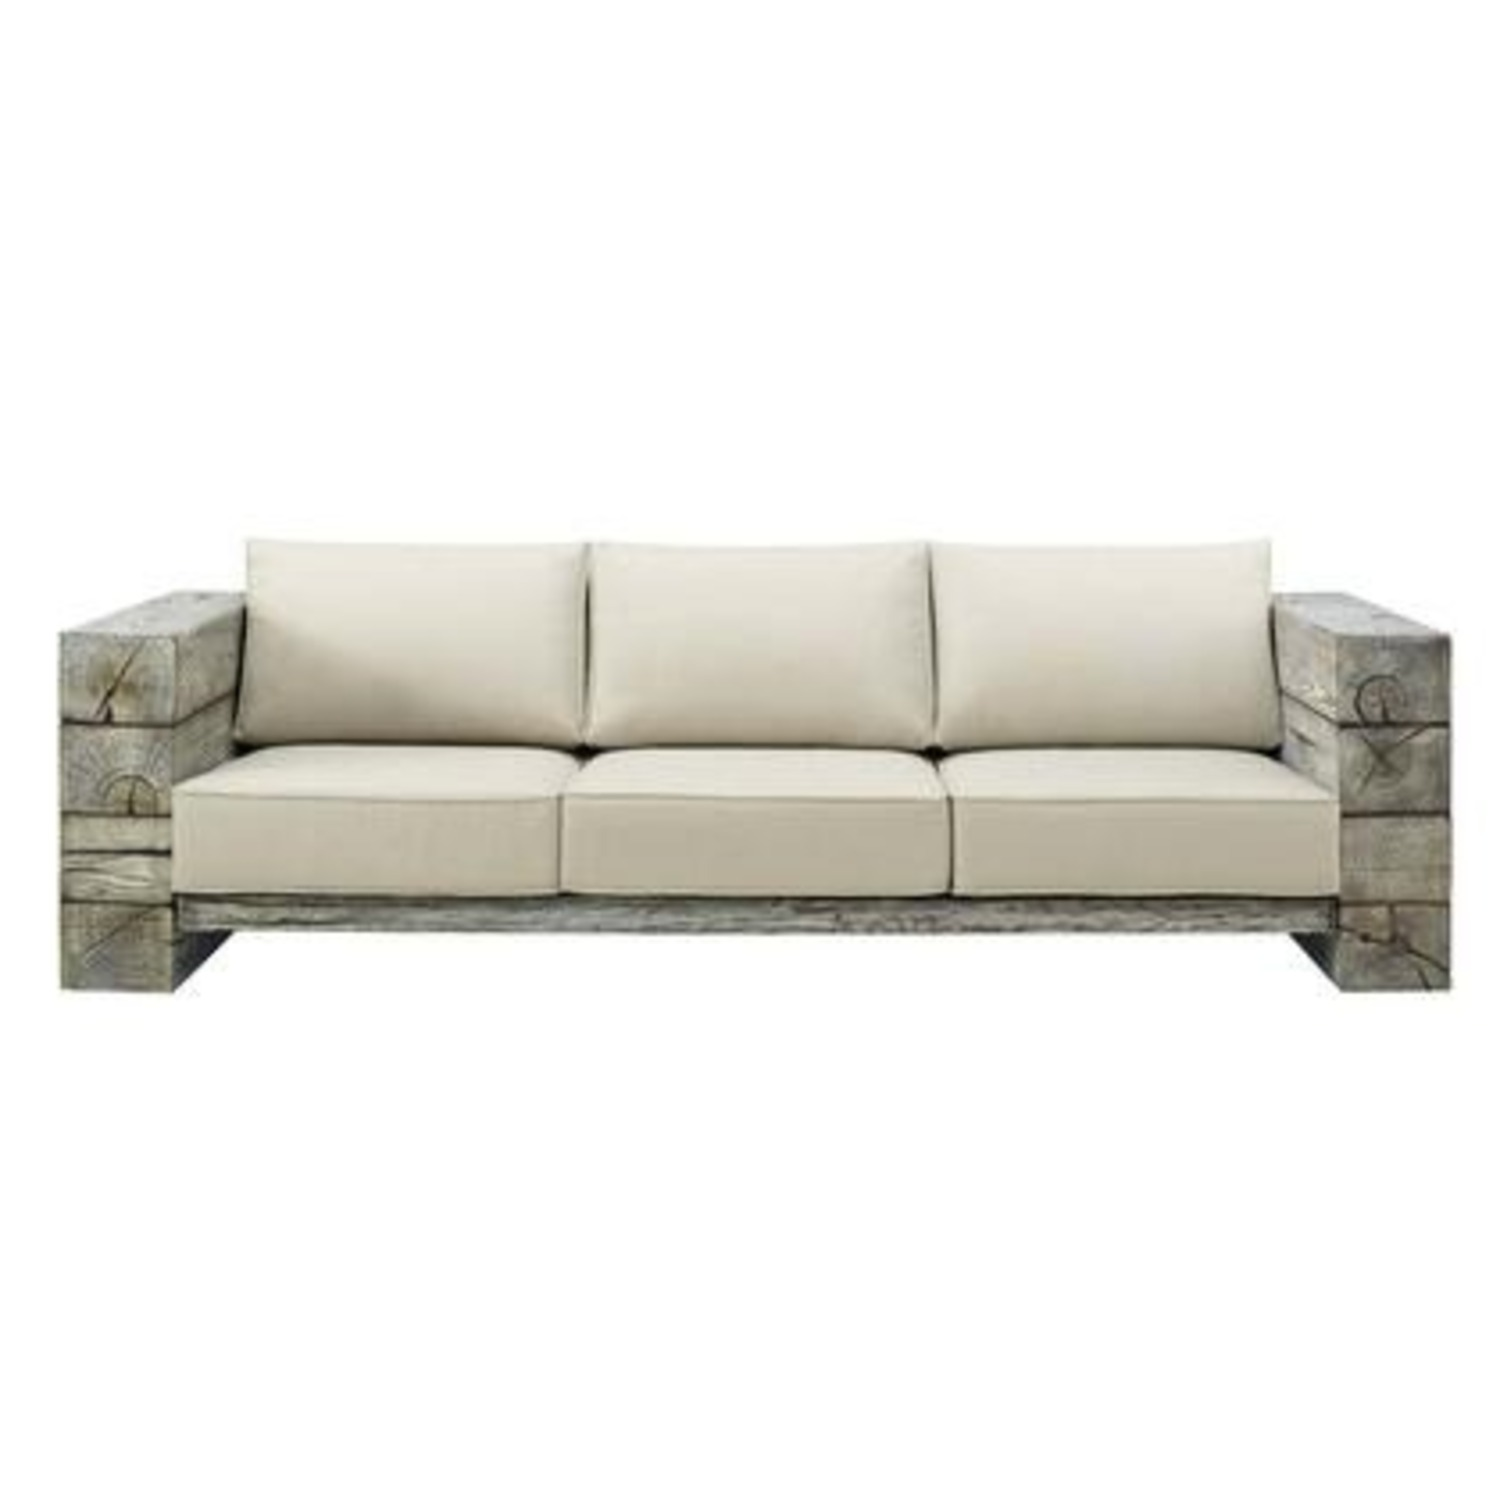 Outdoor Patio Sofa In Light Gray Beige Fabric - image-1